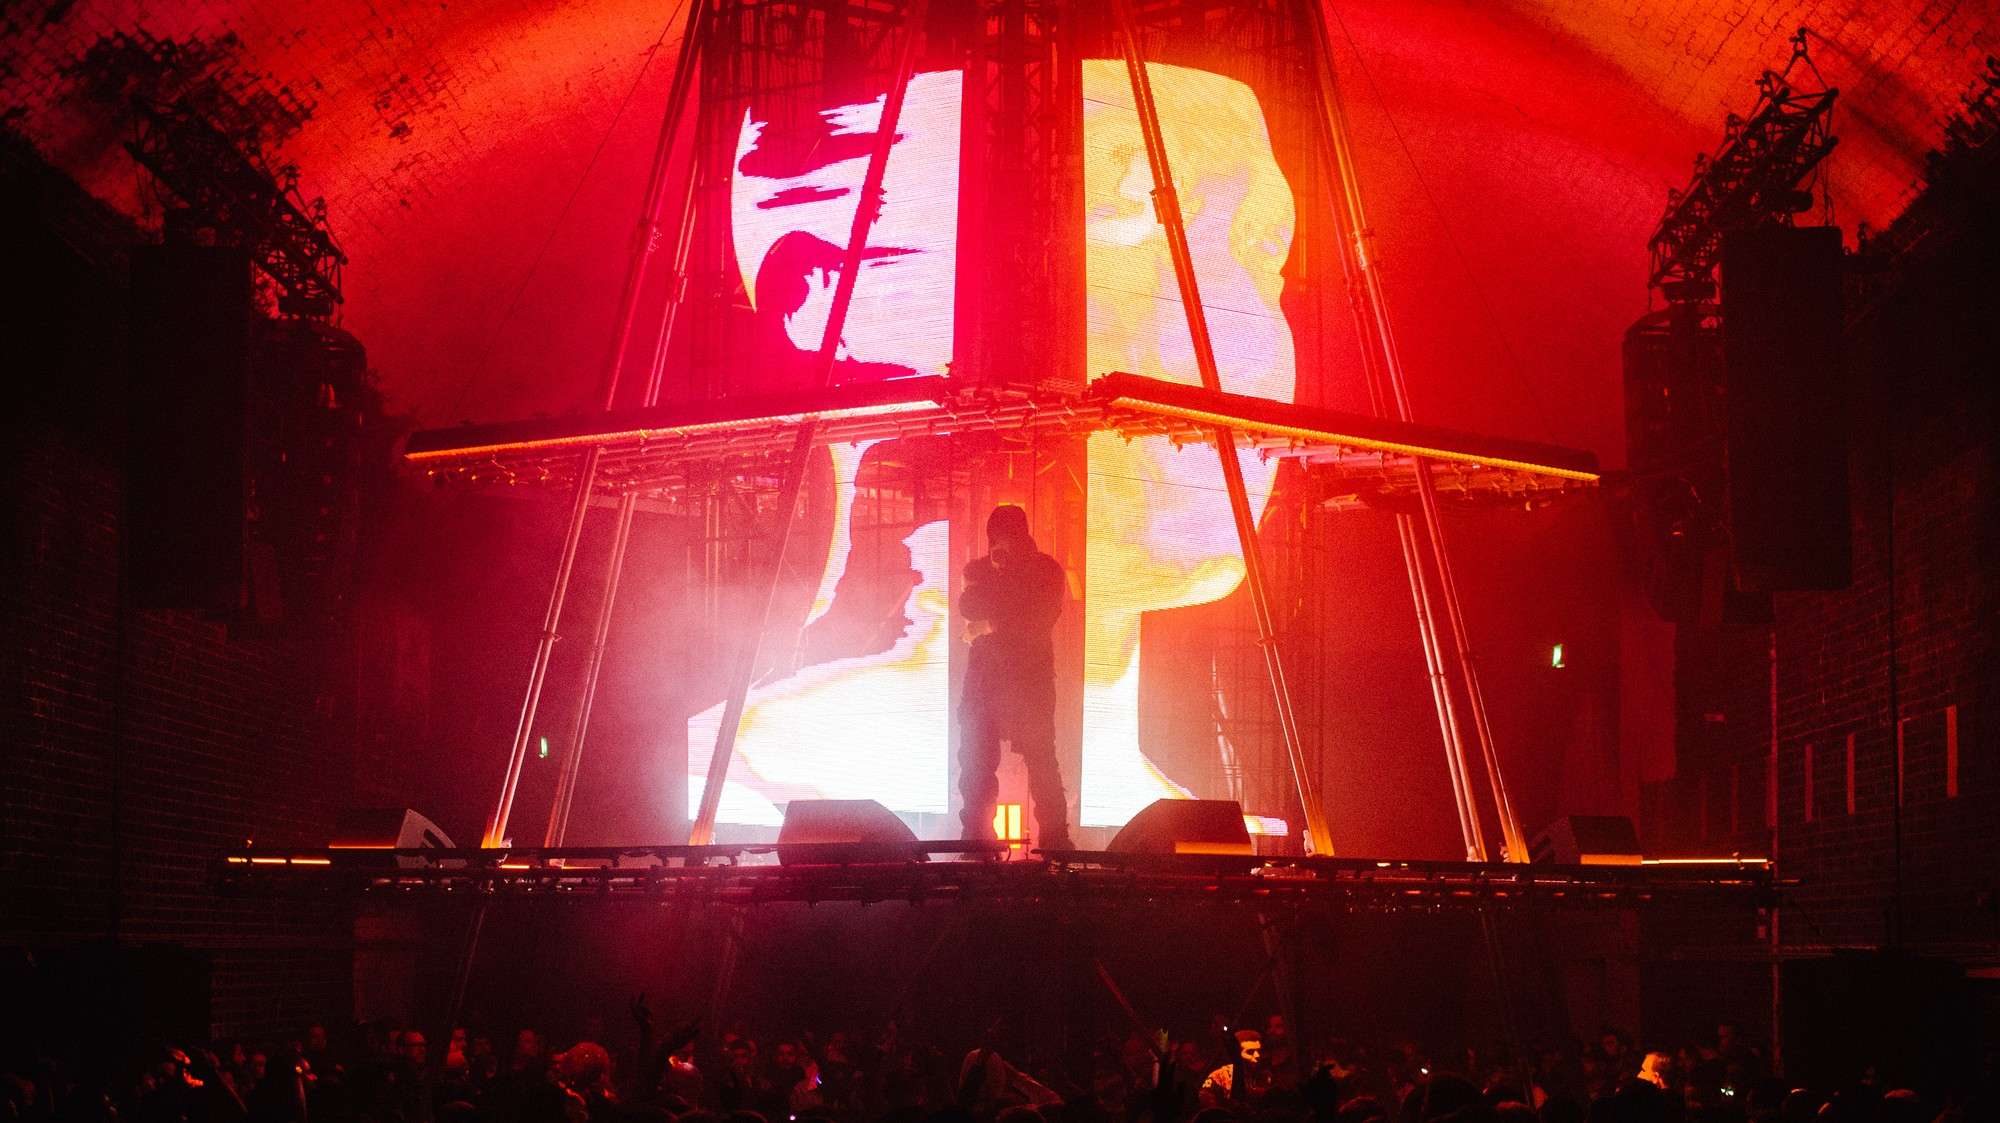 Skepta's dystopia987 introduced us to the rave of the future